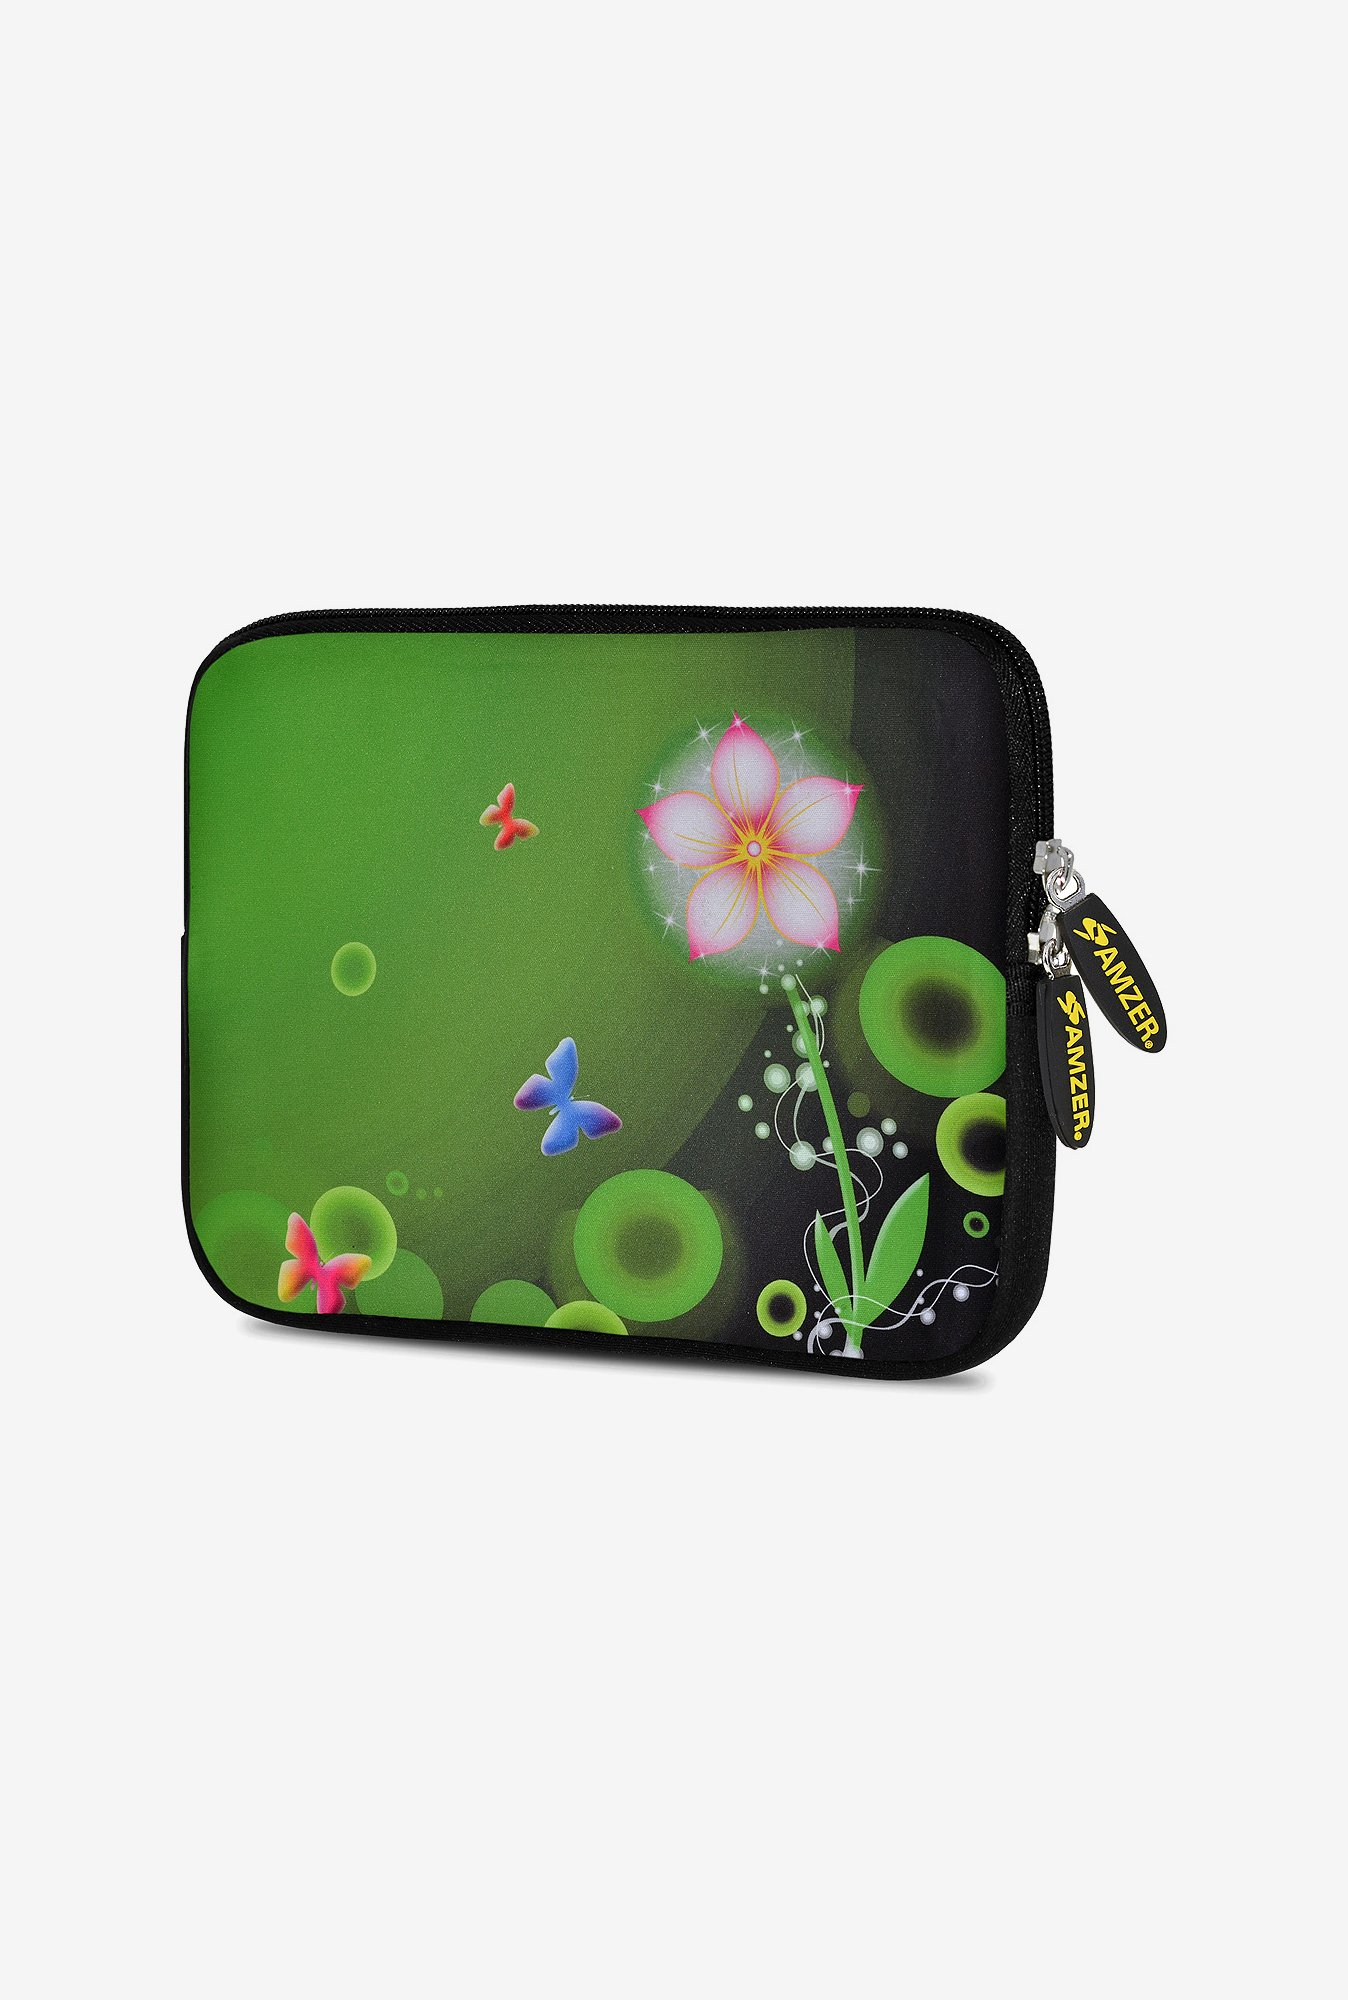 Amzer 7.75 Inch Neoprene Sleeve - Daisy Dream